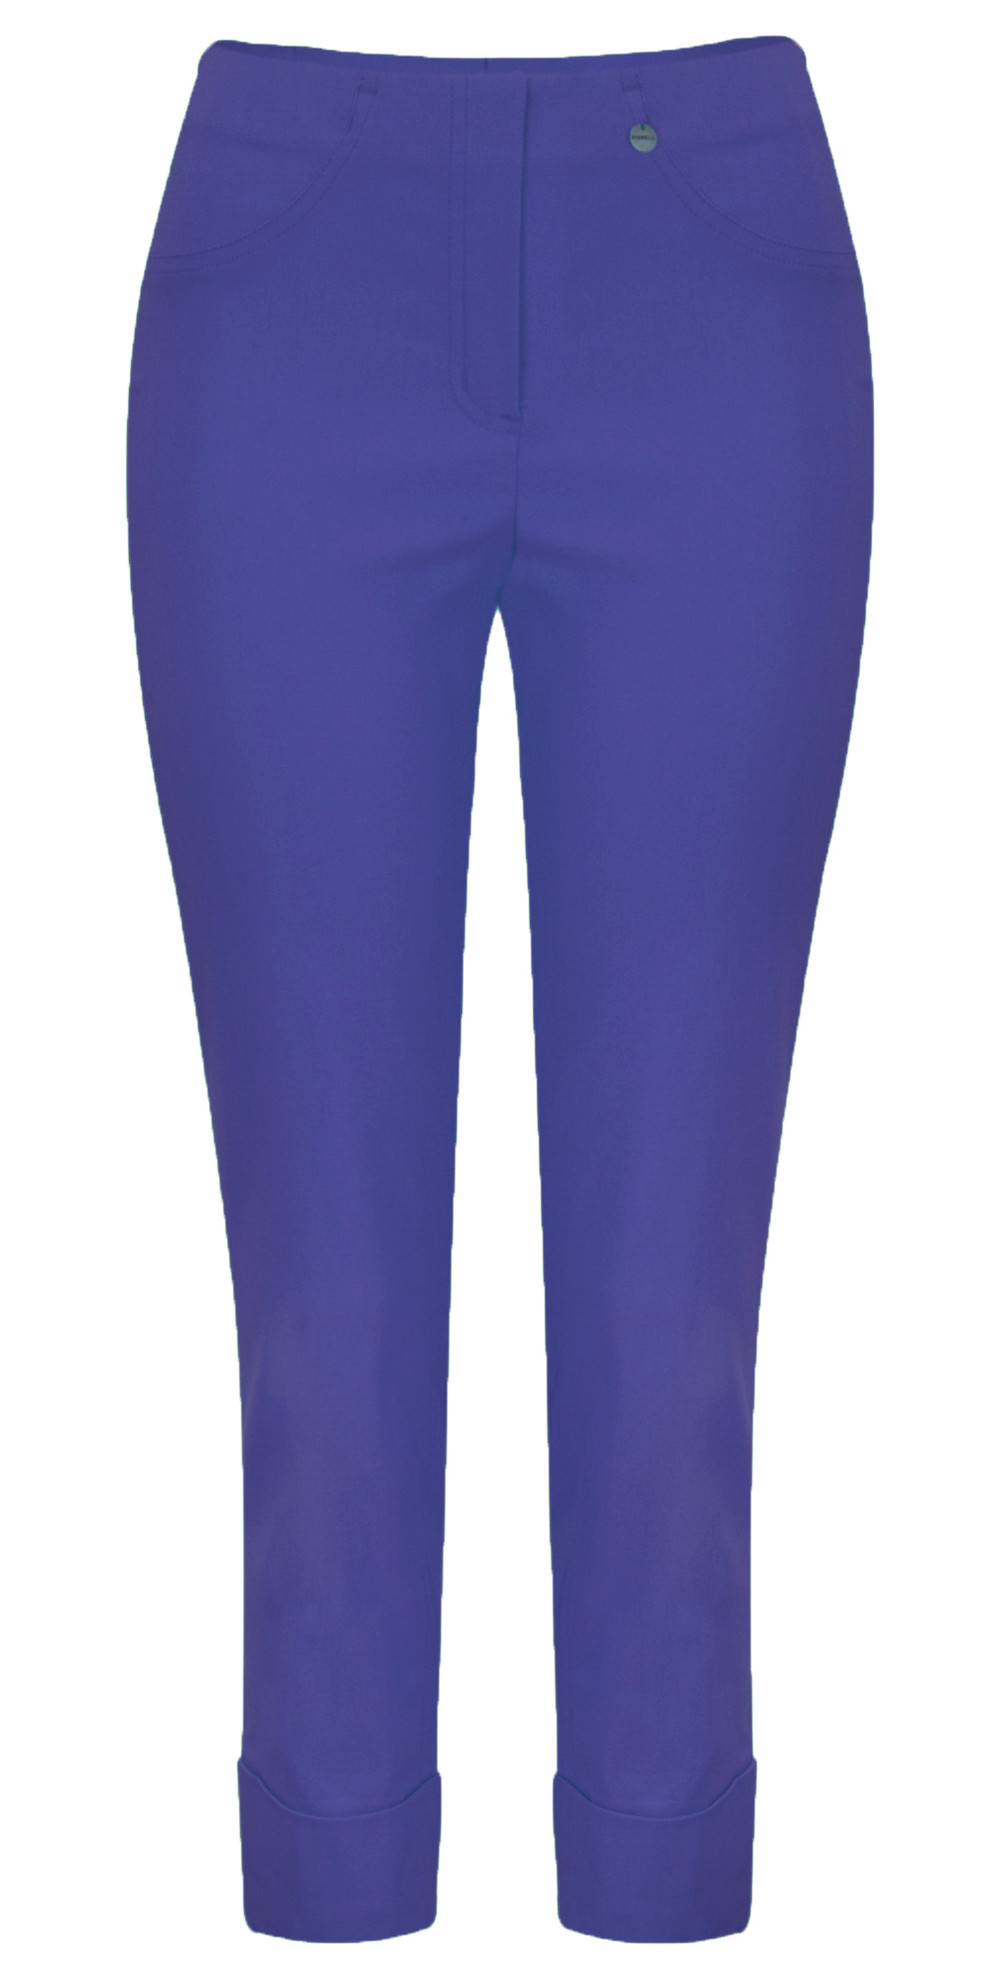 Bella 09 Ankle Length 7/8 Cuff Trouser main image